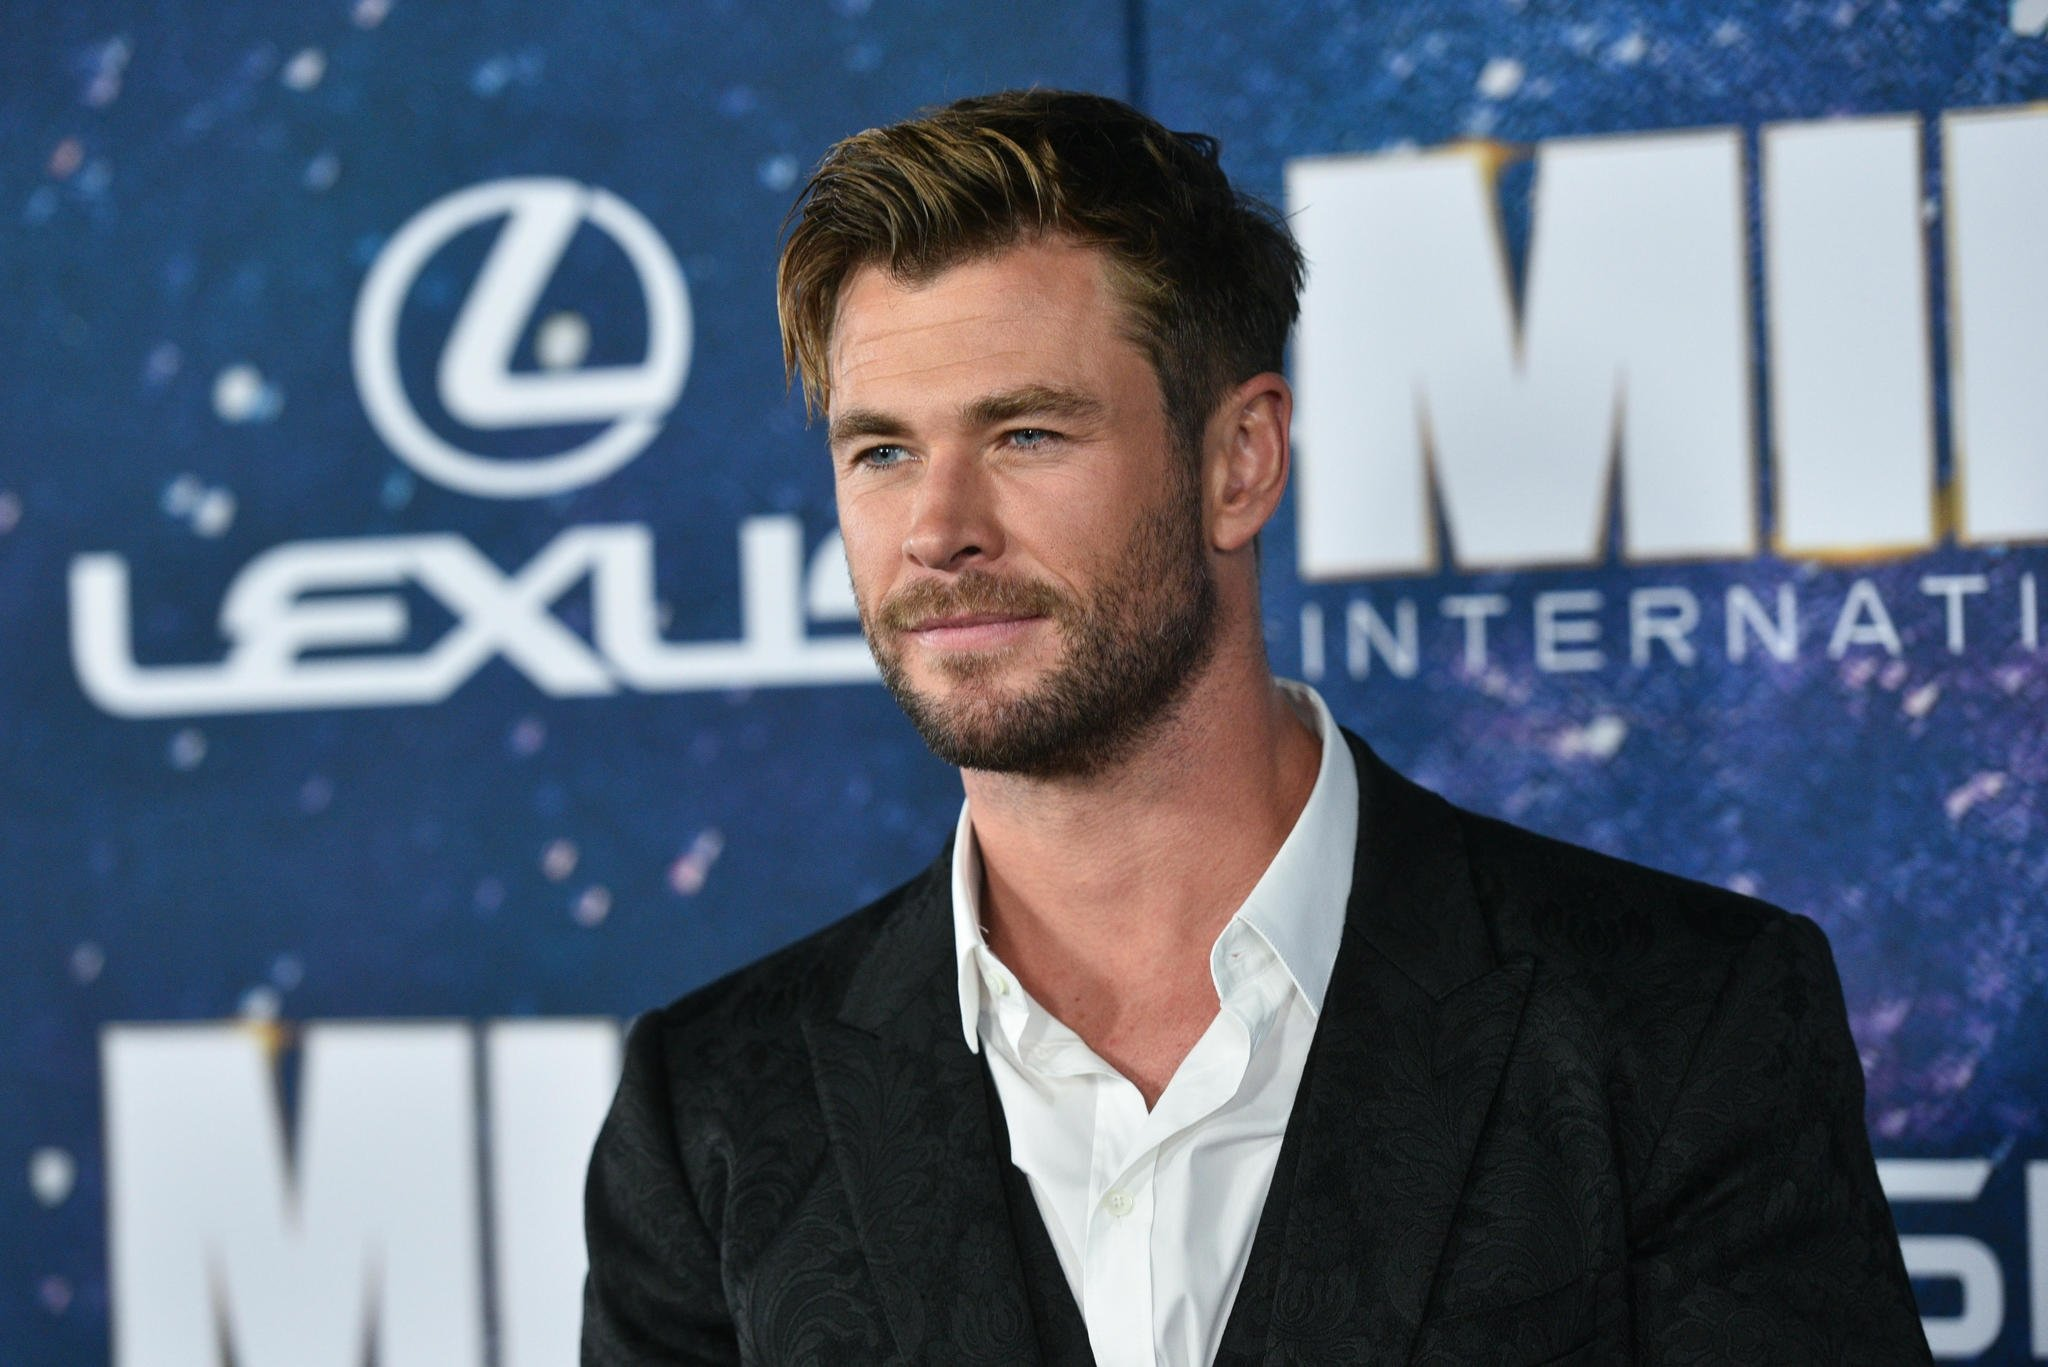 CHRİS HEMSWORTH'TEN 1 MİLYON DOLARLIK BAĞIŞ